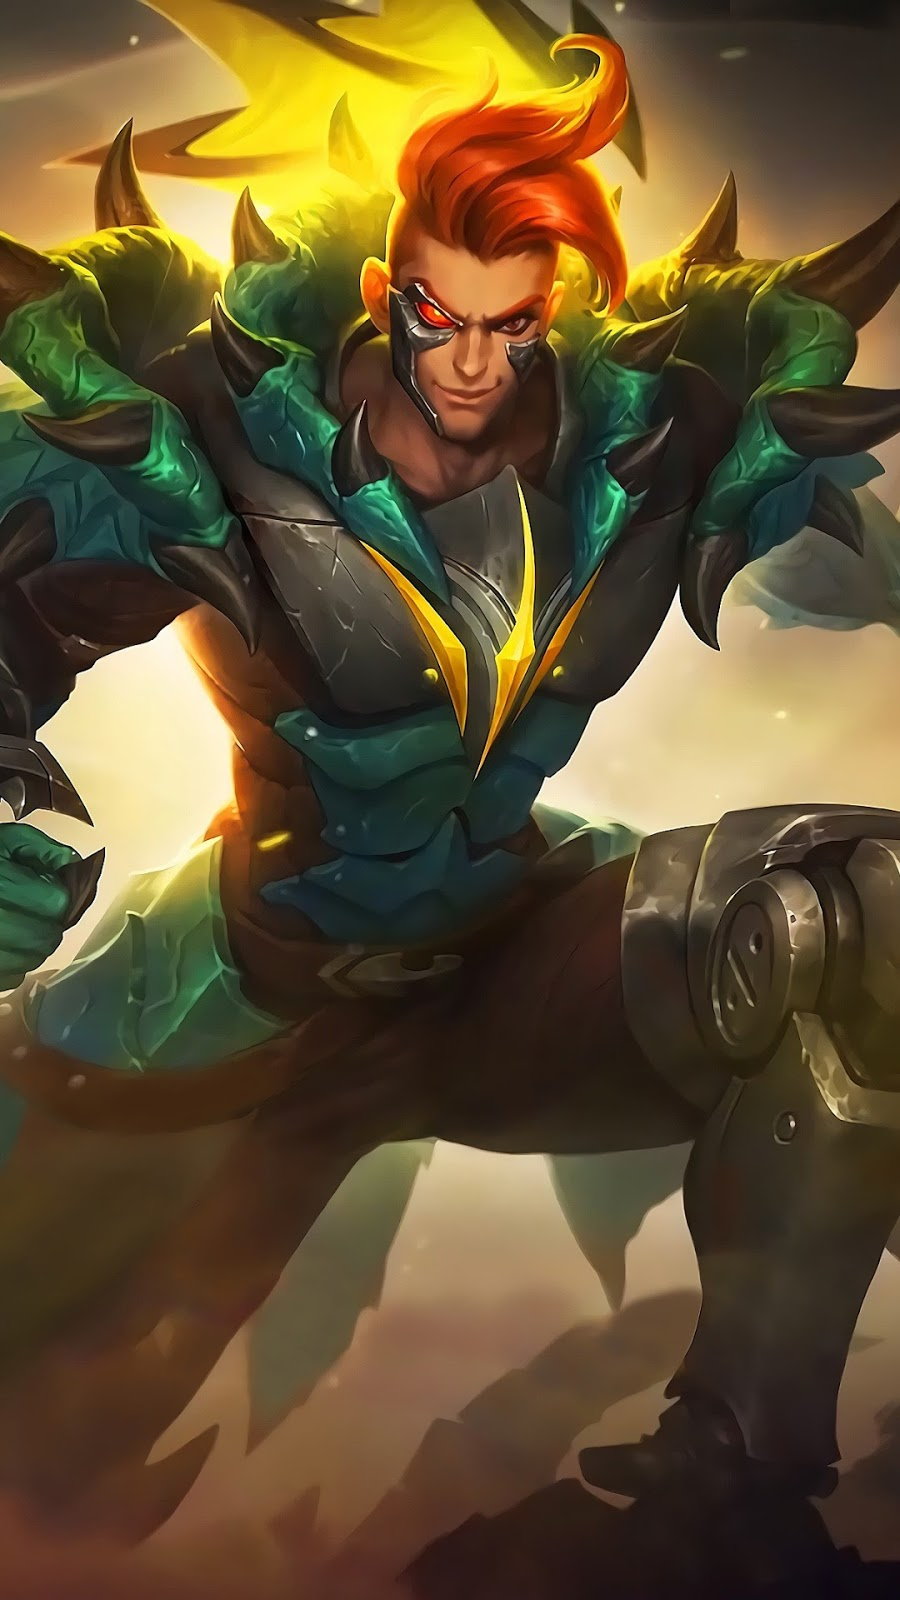 Wallpaper Claude Mecha Dragon Skin Mobile Legends HD for Android and iOS